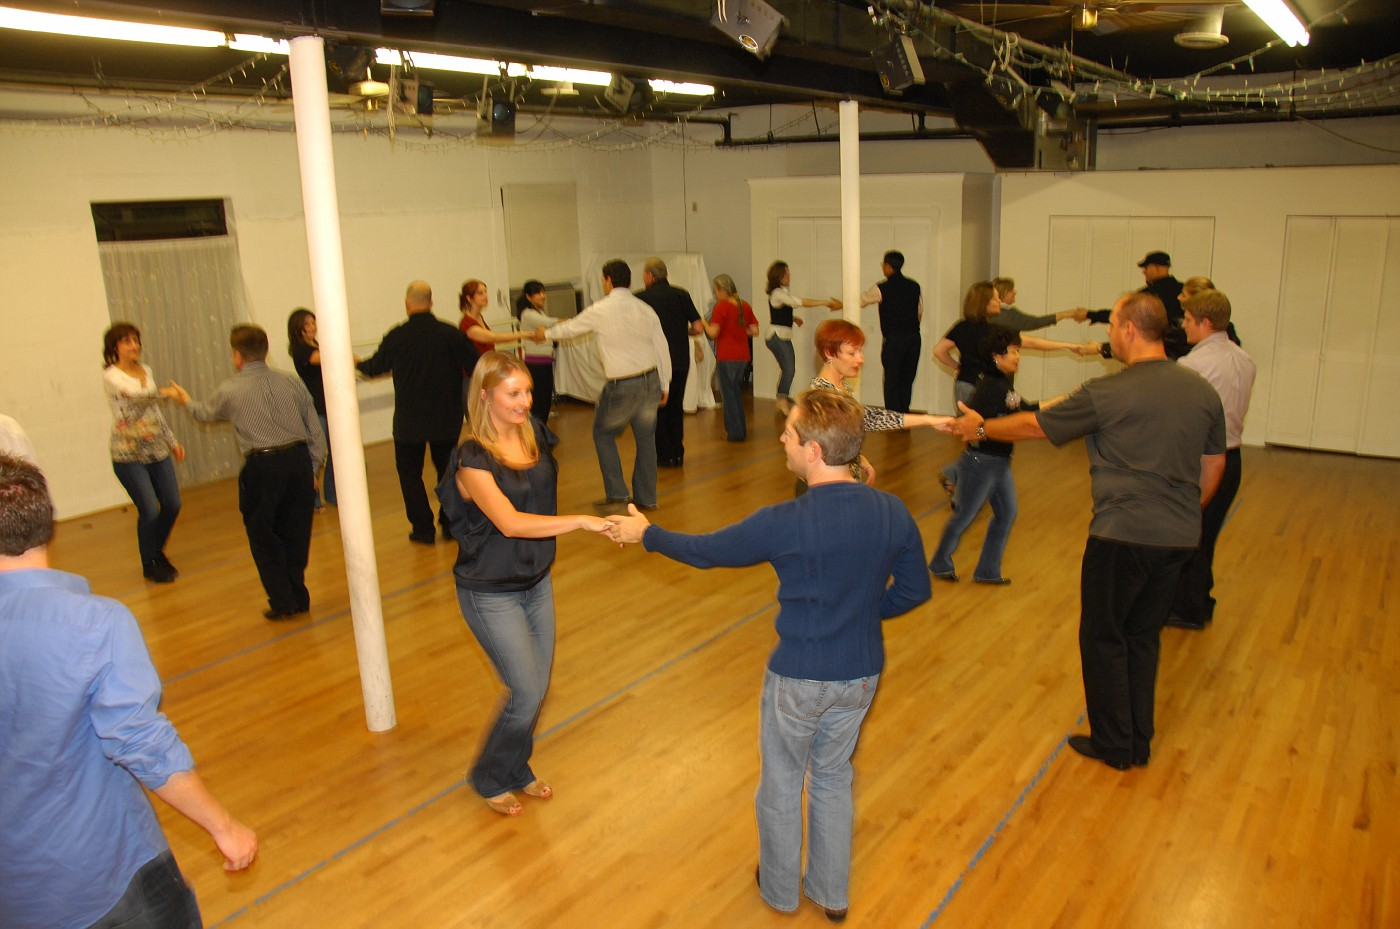 West Coast Swing Beginner Class at Dance Dimensions in Norwalk, CT